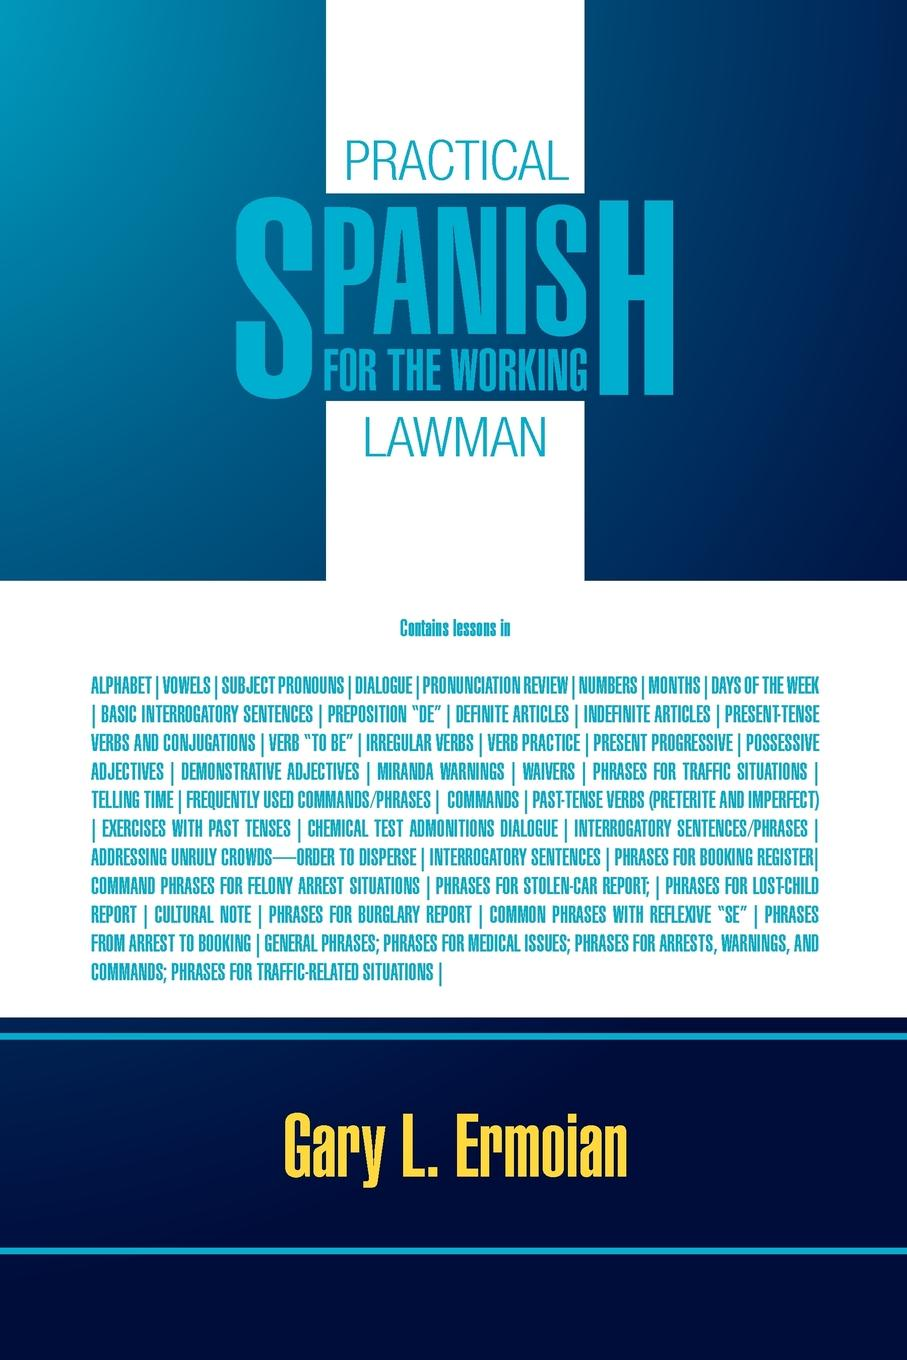 Gary L. Ermoian Practical Spanish for the Working Lawman patricia johns the lawman s surprise family